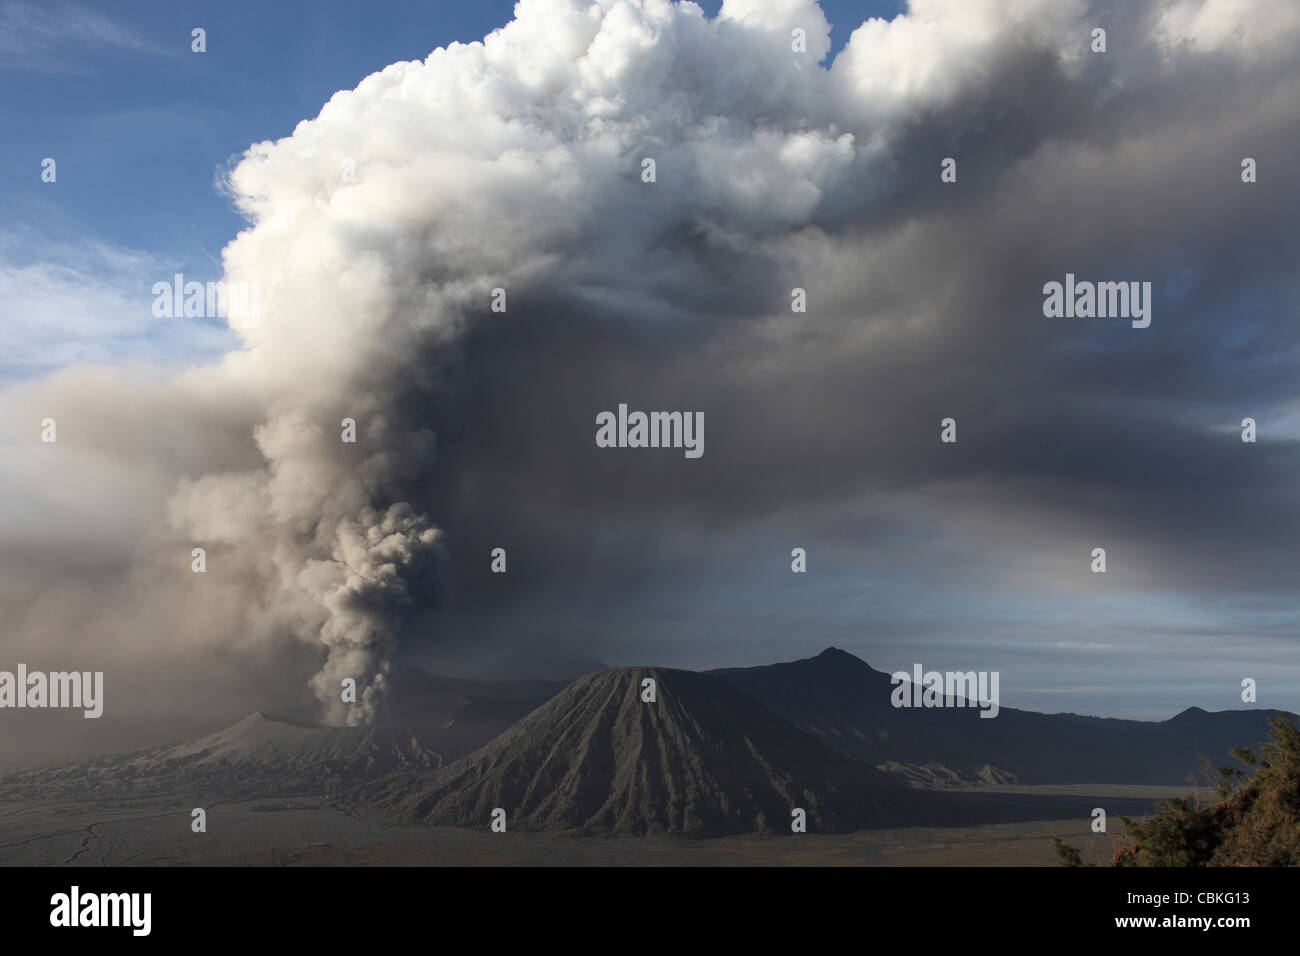 March 19, 2011 - Eruption of ash cloud from Mount Bromo volcano, Tengger Caldera, Java, Indonesia. - Stock Image